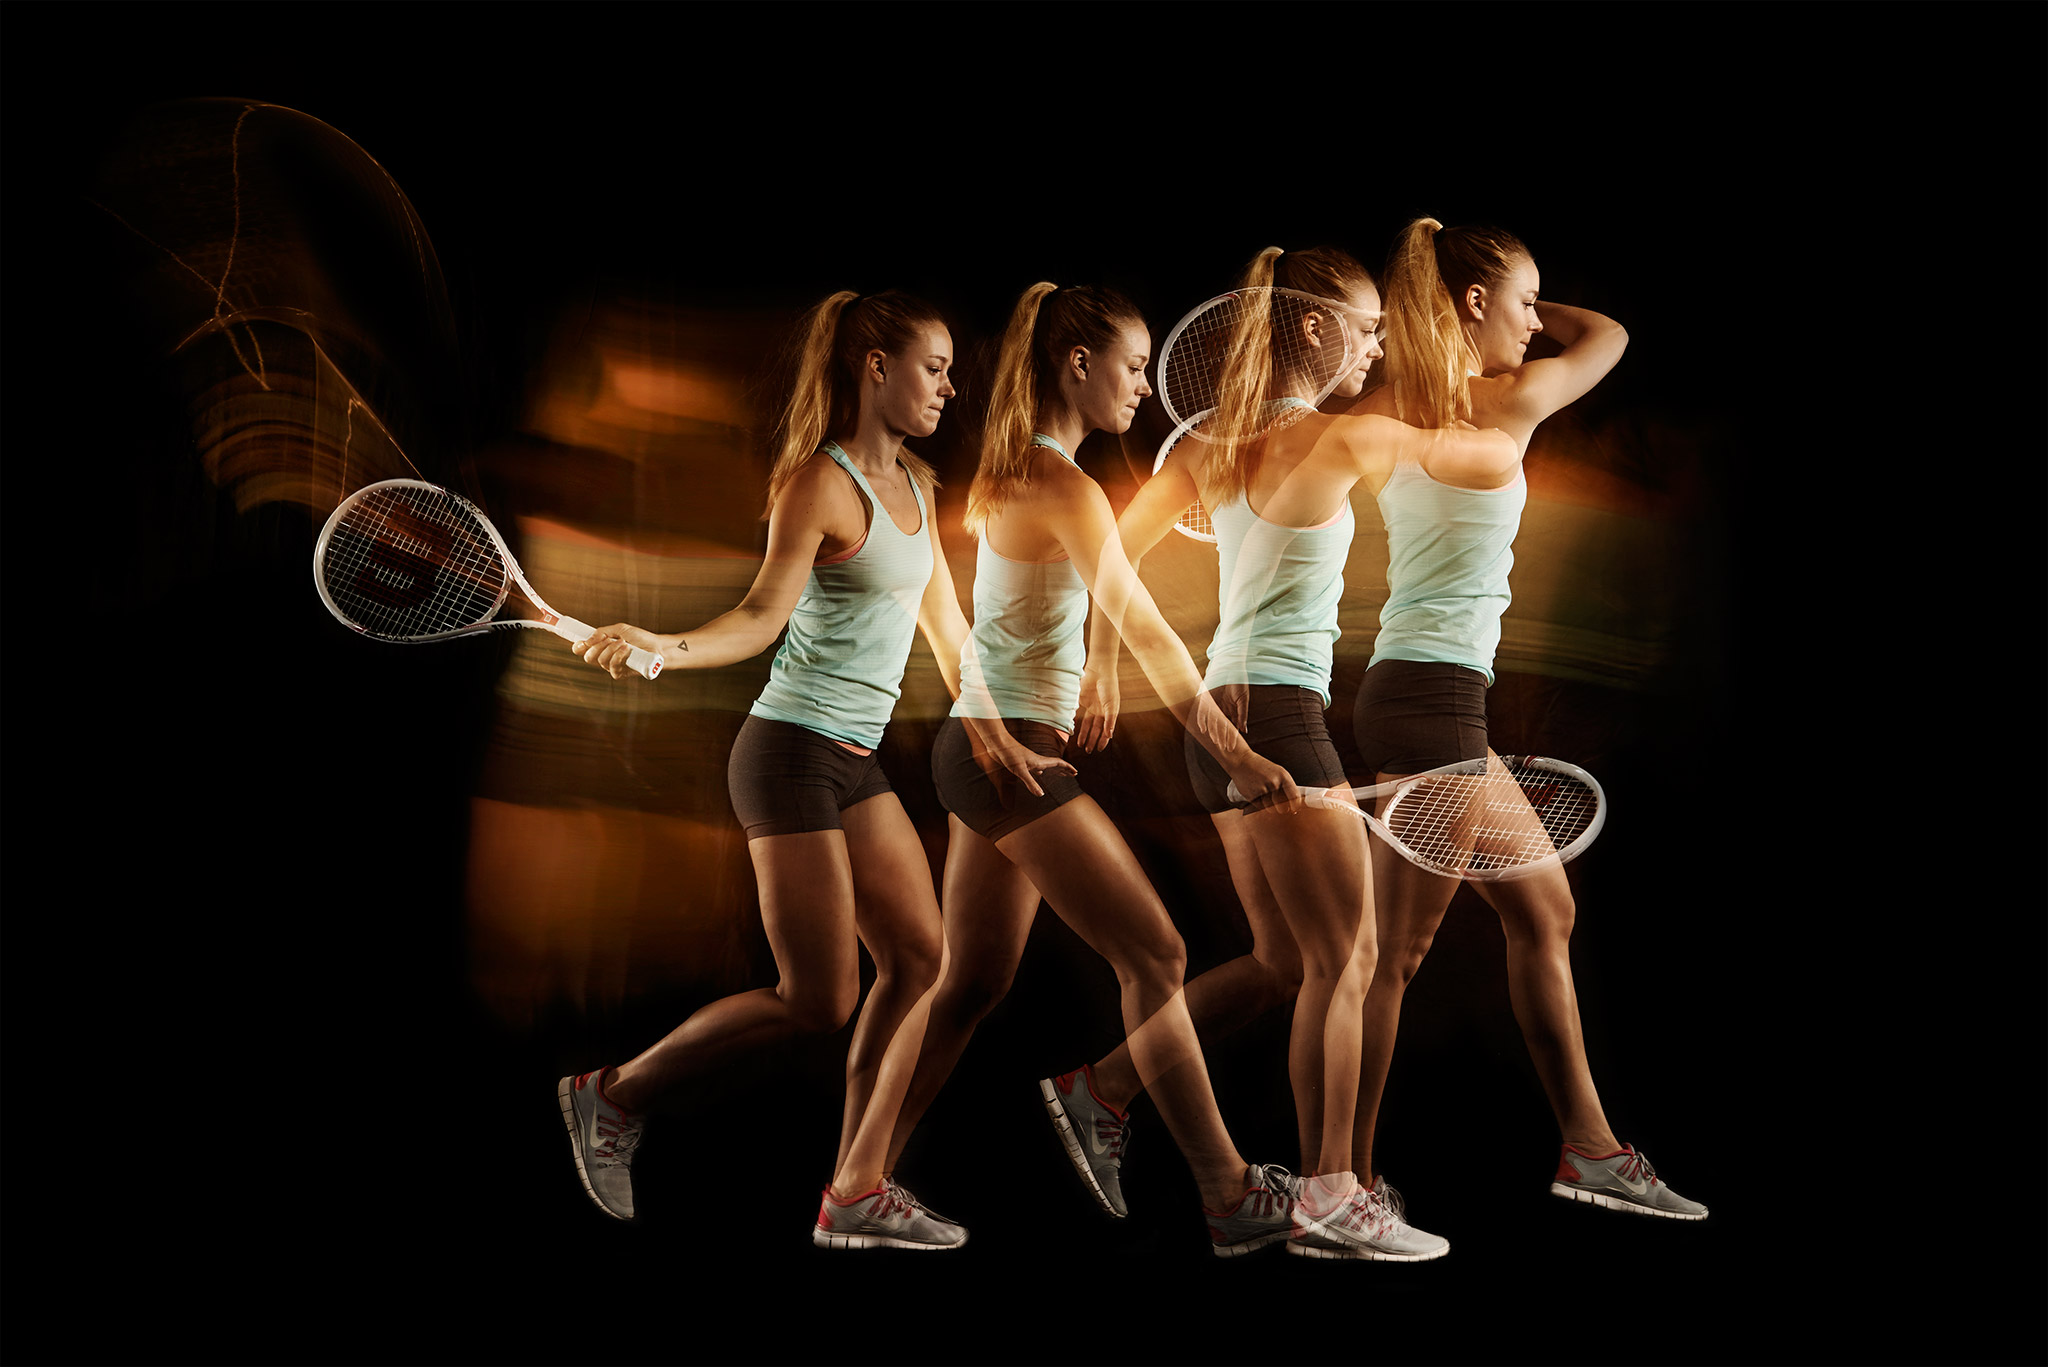 Tennis Forehand Trajectory | Zach Ancell Photography